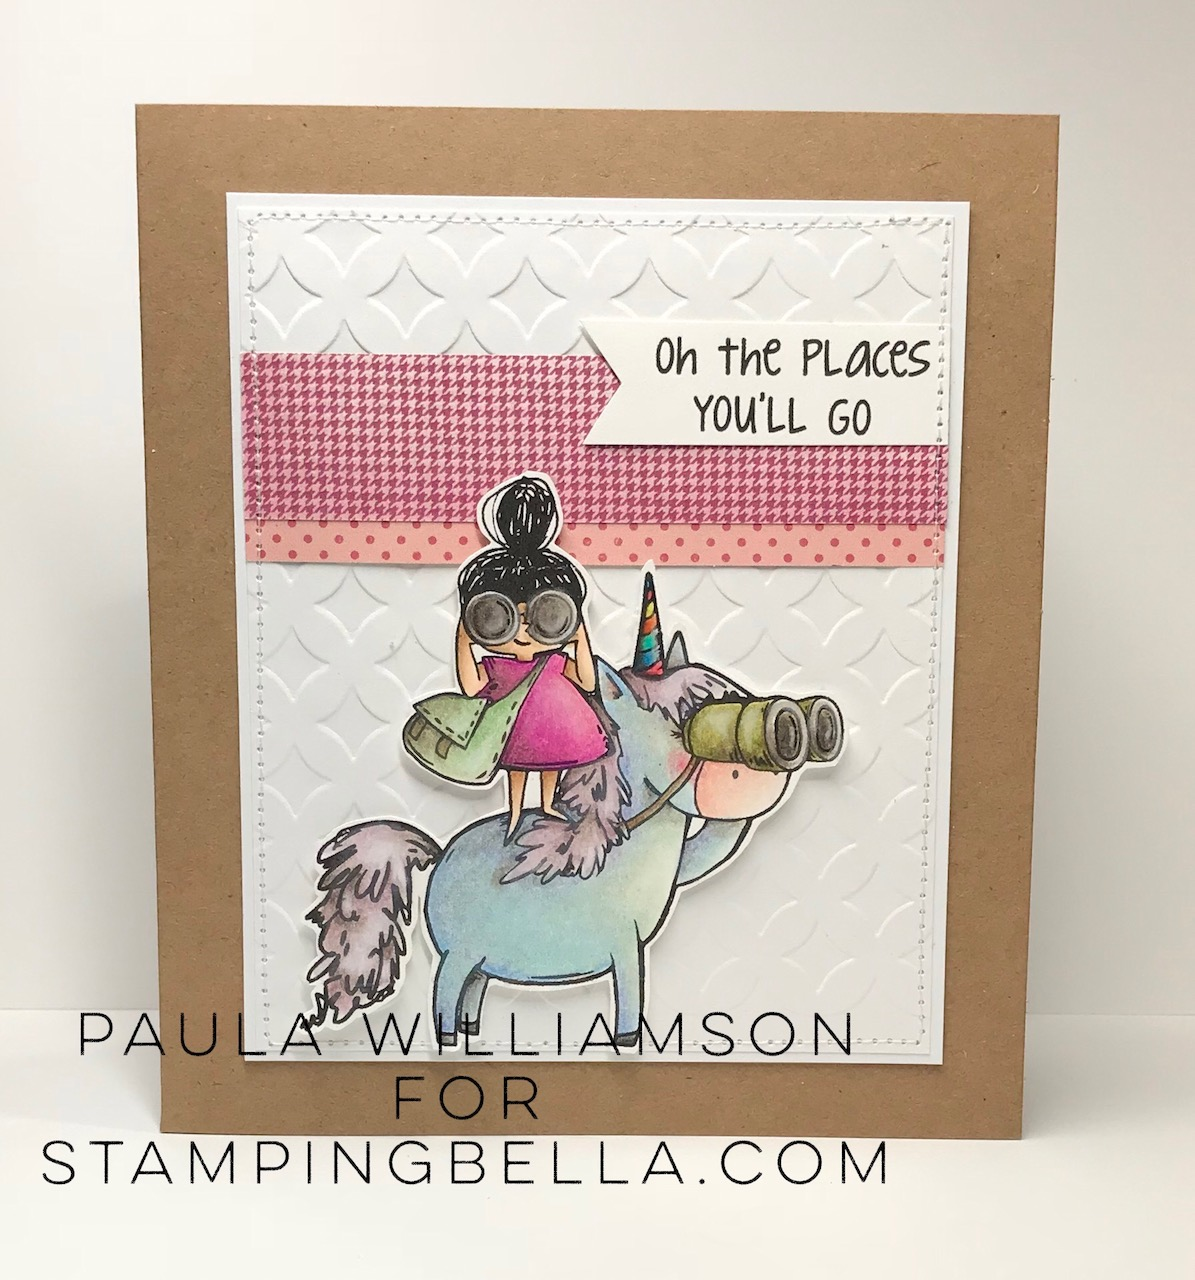 www.stampingbella.com: Rubber stamp used Rosie and Bernie LOVE TO EXPLORE and our Adventure Sentiment set. Card by Paula Williamson